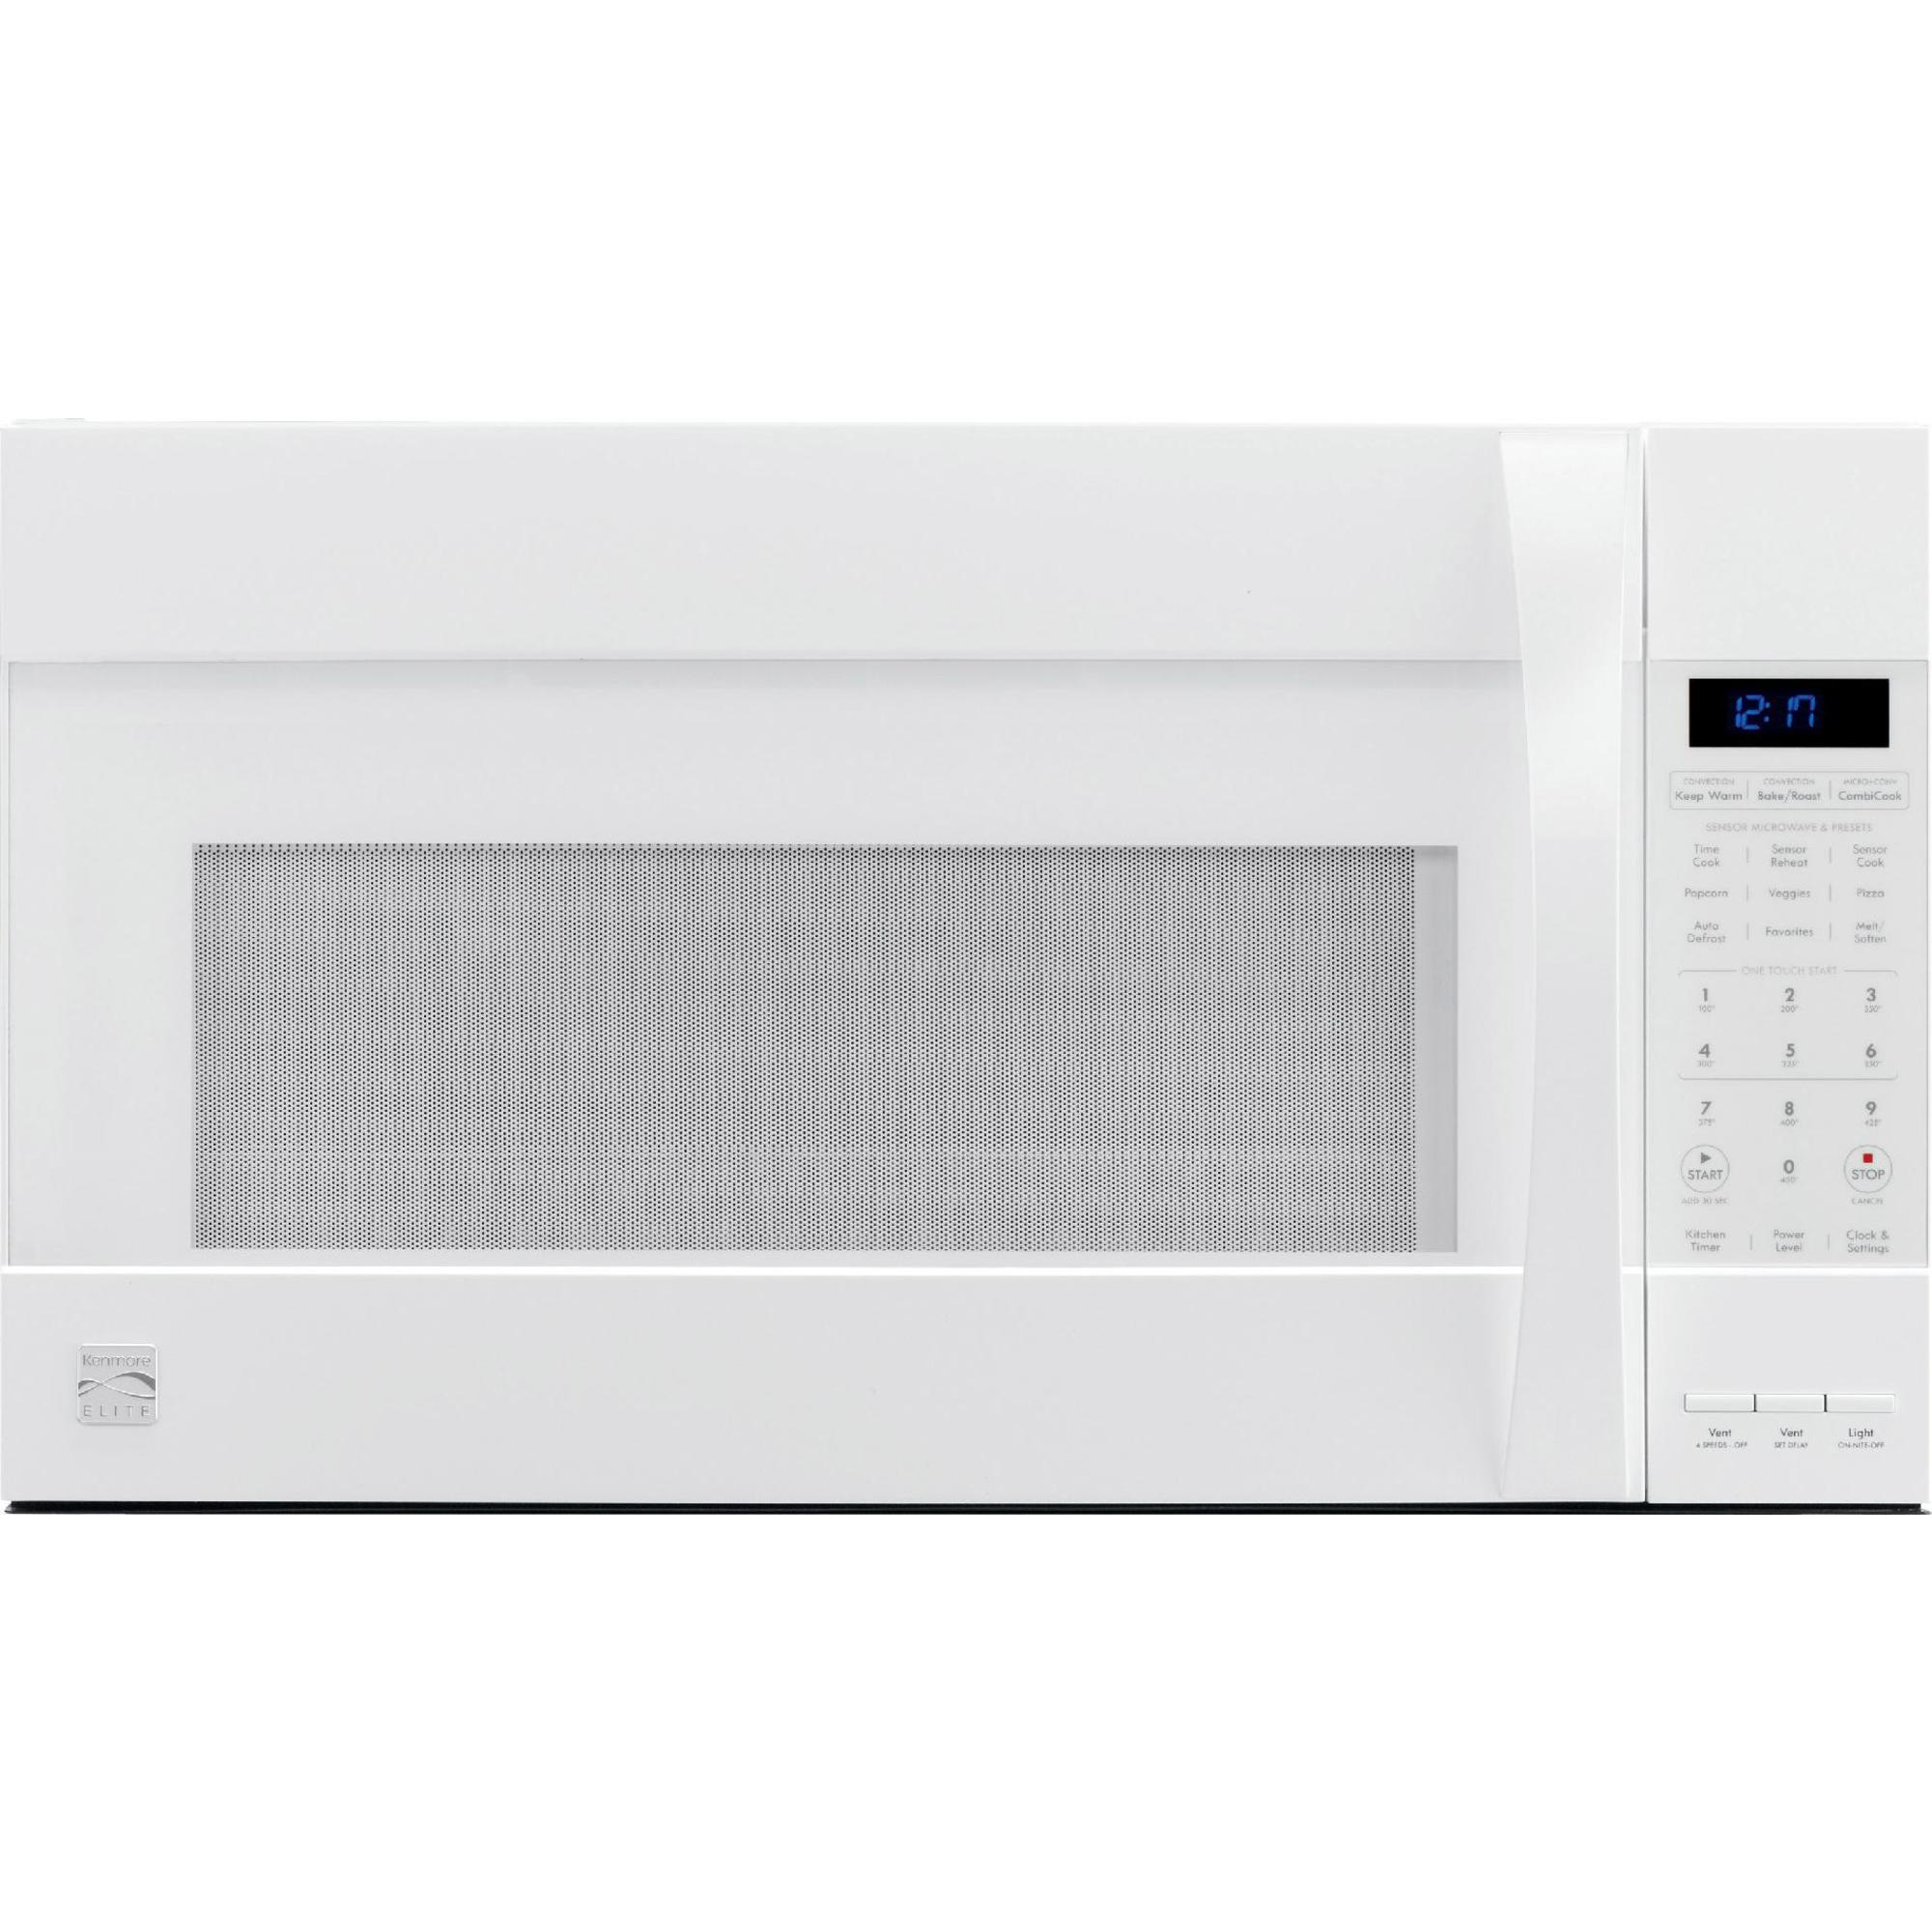 0012505563102 - 80372 1.8 CU. FT. OVER-THE-RANGE CONVECTION MICROWAVE - WHITE